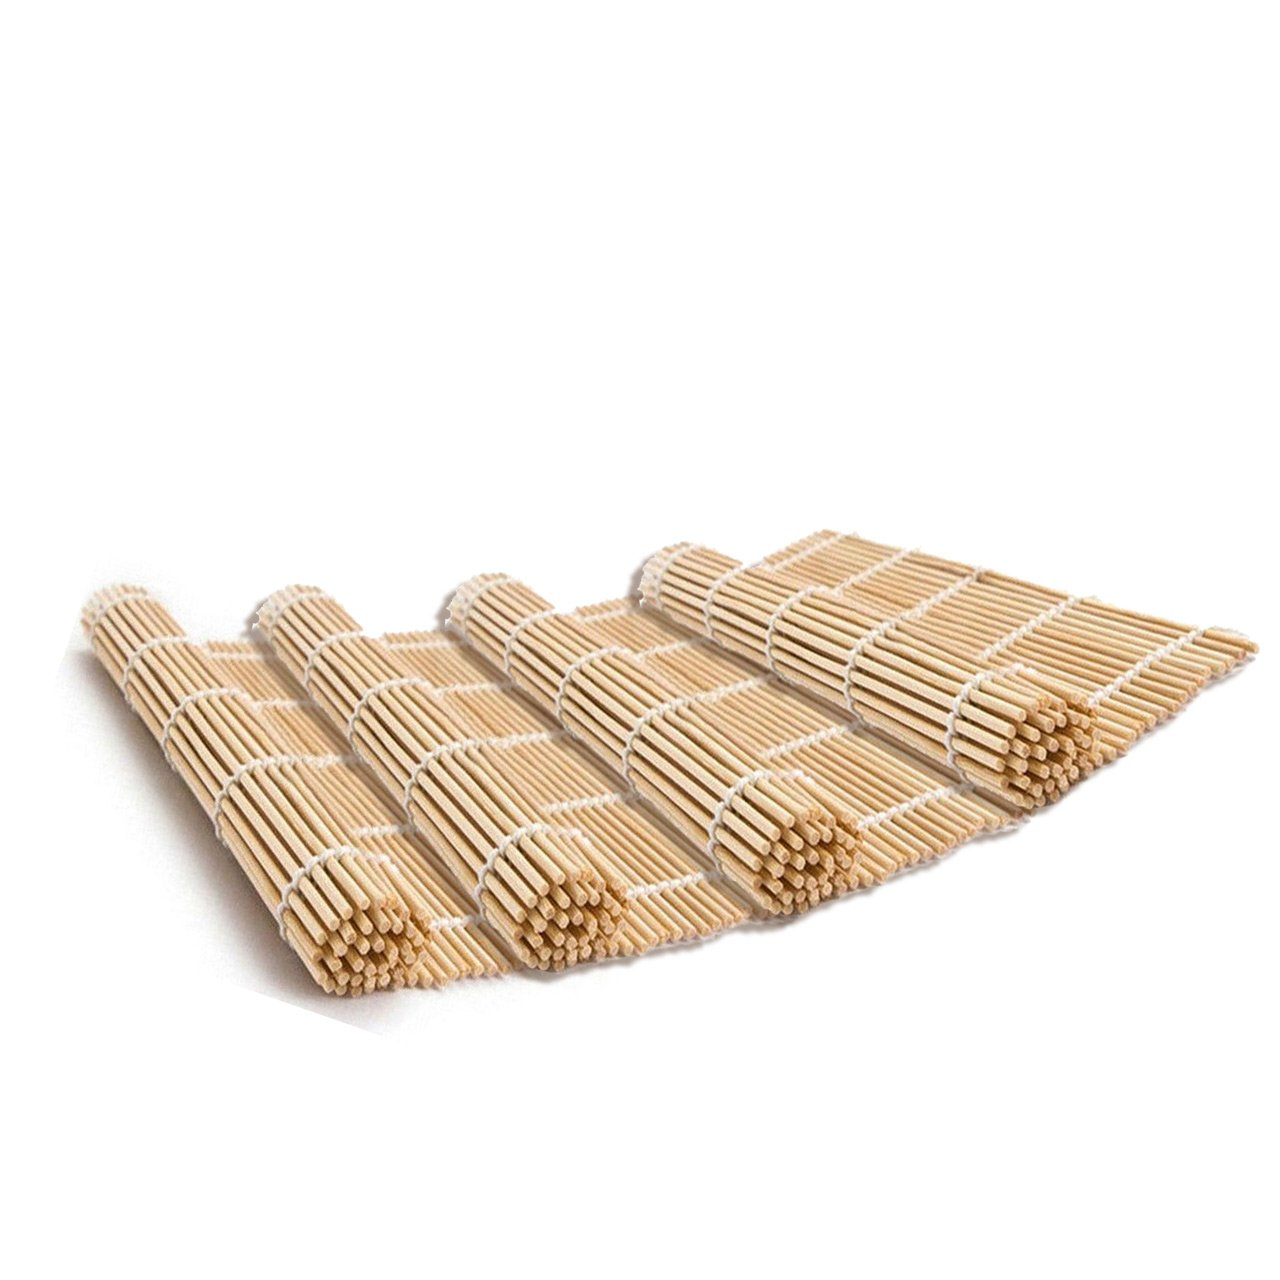 Easy Plants SET OF 4 JAPANESE STYLE SUSHI ROLL MAKER BAMBOO ROLLING ROLLER MAT PREPARATION EQUIPMENT 9.5 x 9.5Inch